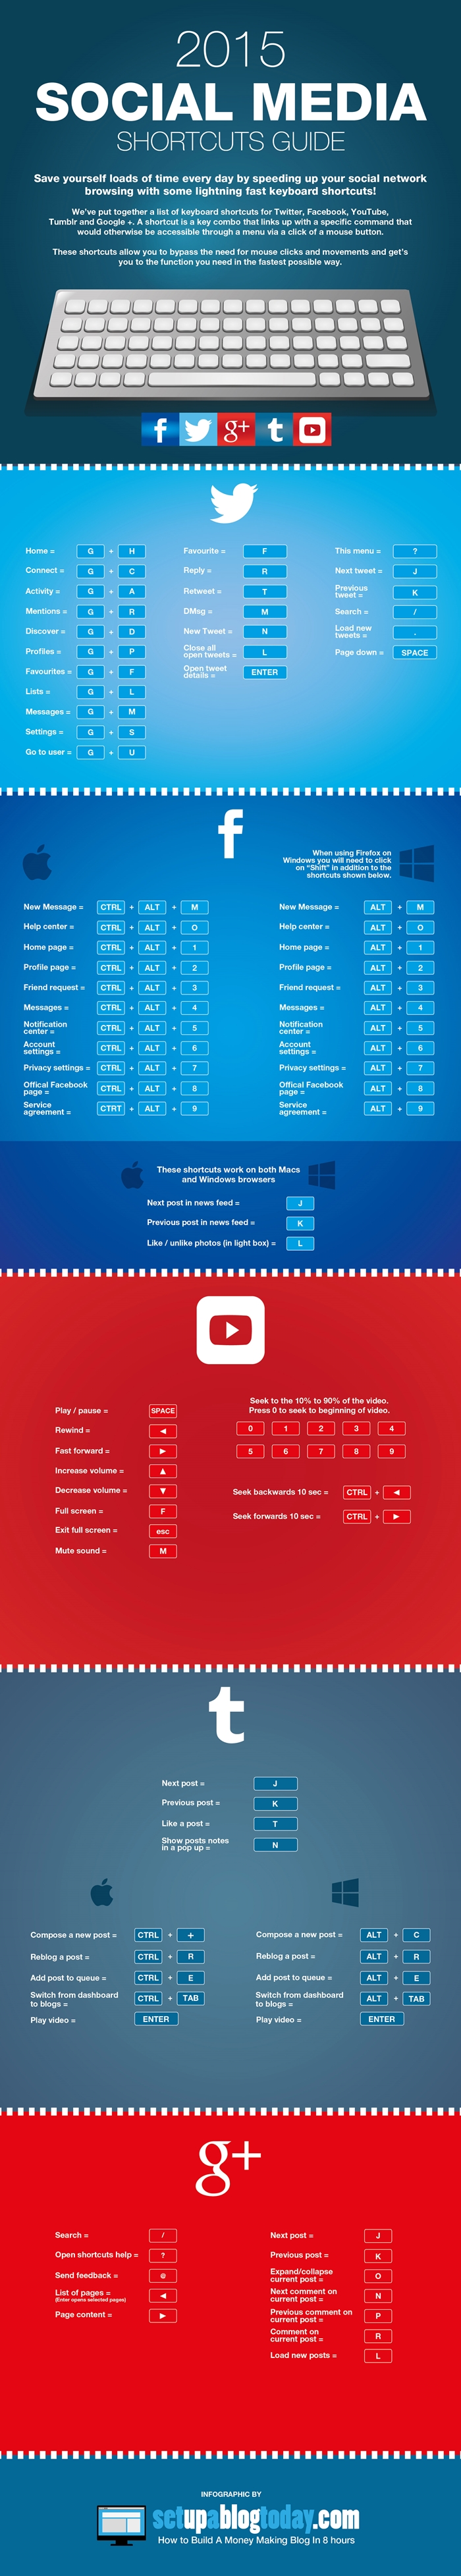 social-media-shortcuts-infographic-2015-700